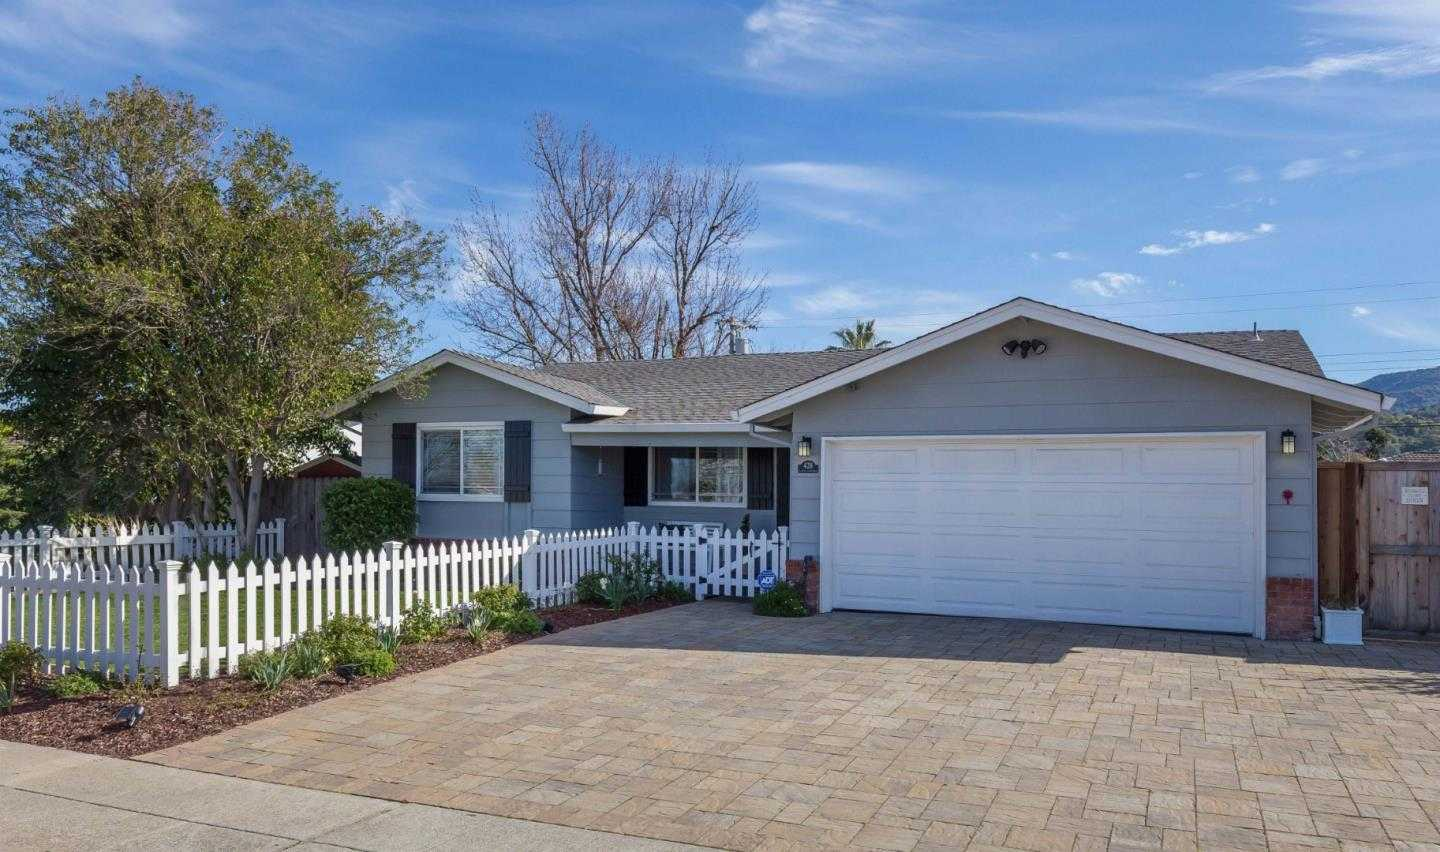 $1,449,000 - 4Br/2Ba -  for Sale in Los Gatos